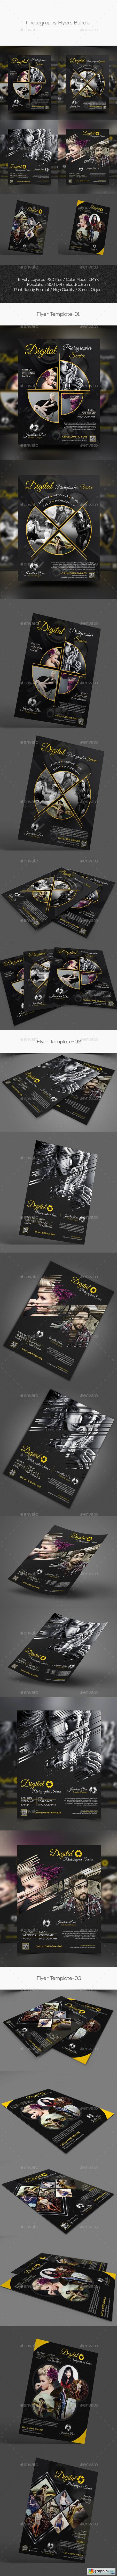 Photography Flyers Bundle 14561885